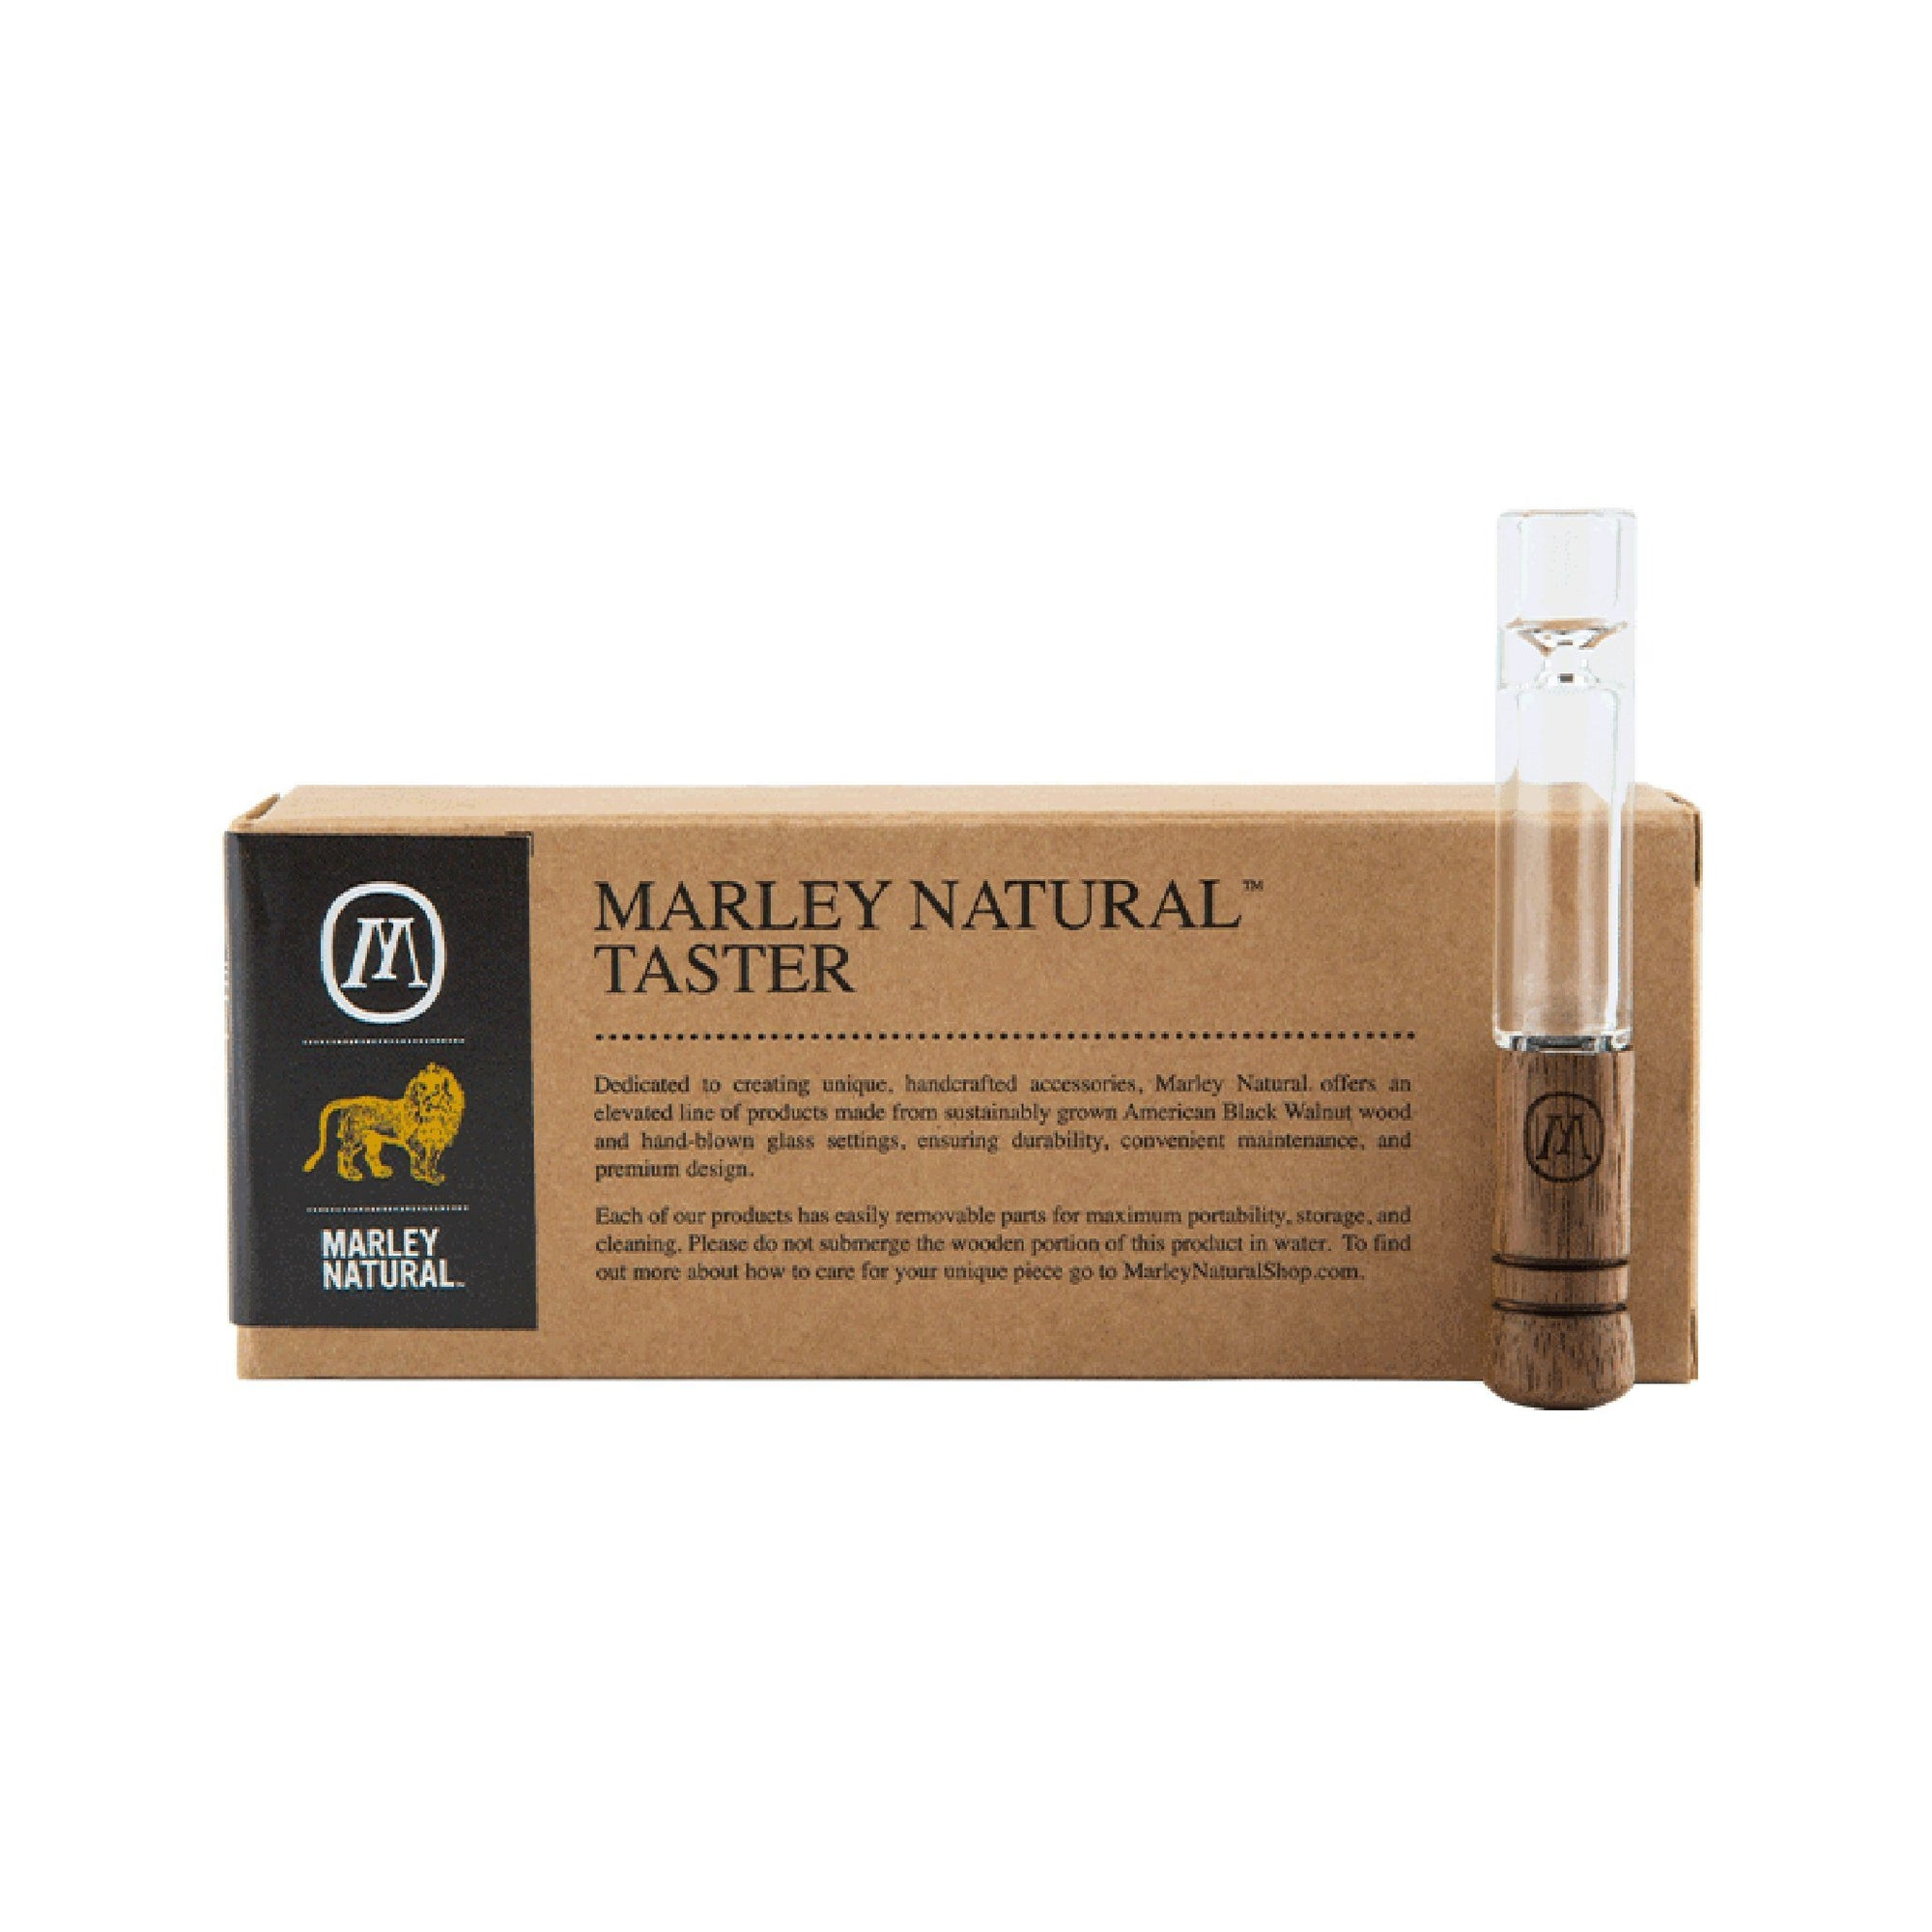 Upright shot package Marley Natural Taster on left with M yellow lion logo and the actual 3 inch wooden glass taster on right